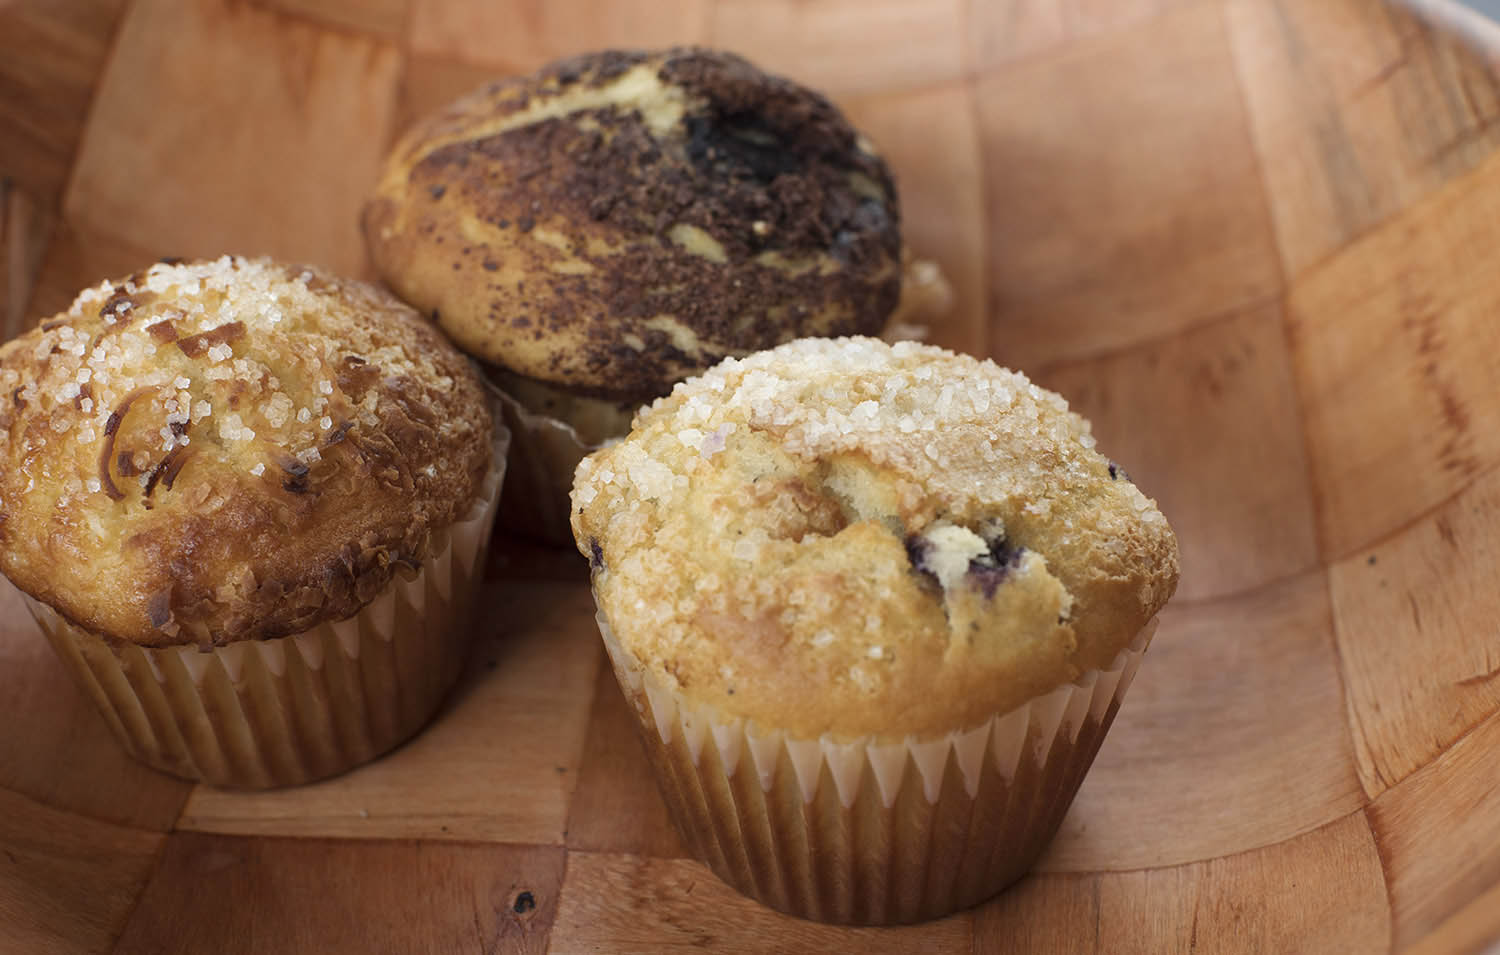 Muffins from The Pastry Pantry now available at Apostrophe Cafe at Proctors. Baked locally and delivered every Monday, Wednesday and Friday. Photo taken Thursday, Mrch 15, 2018.